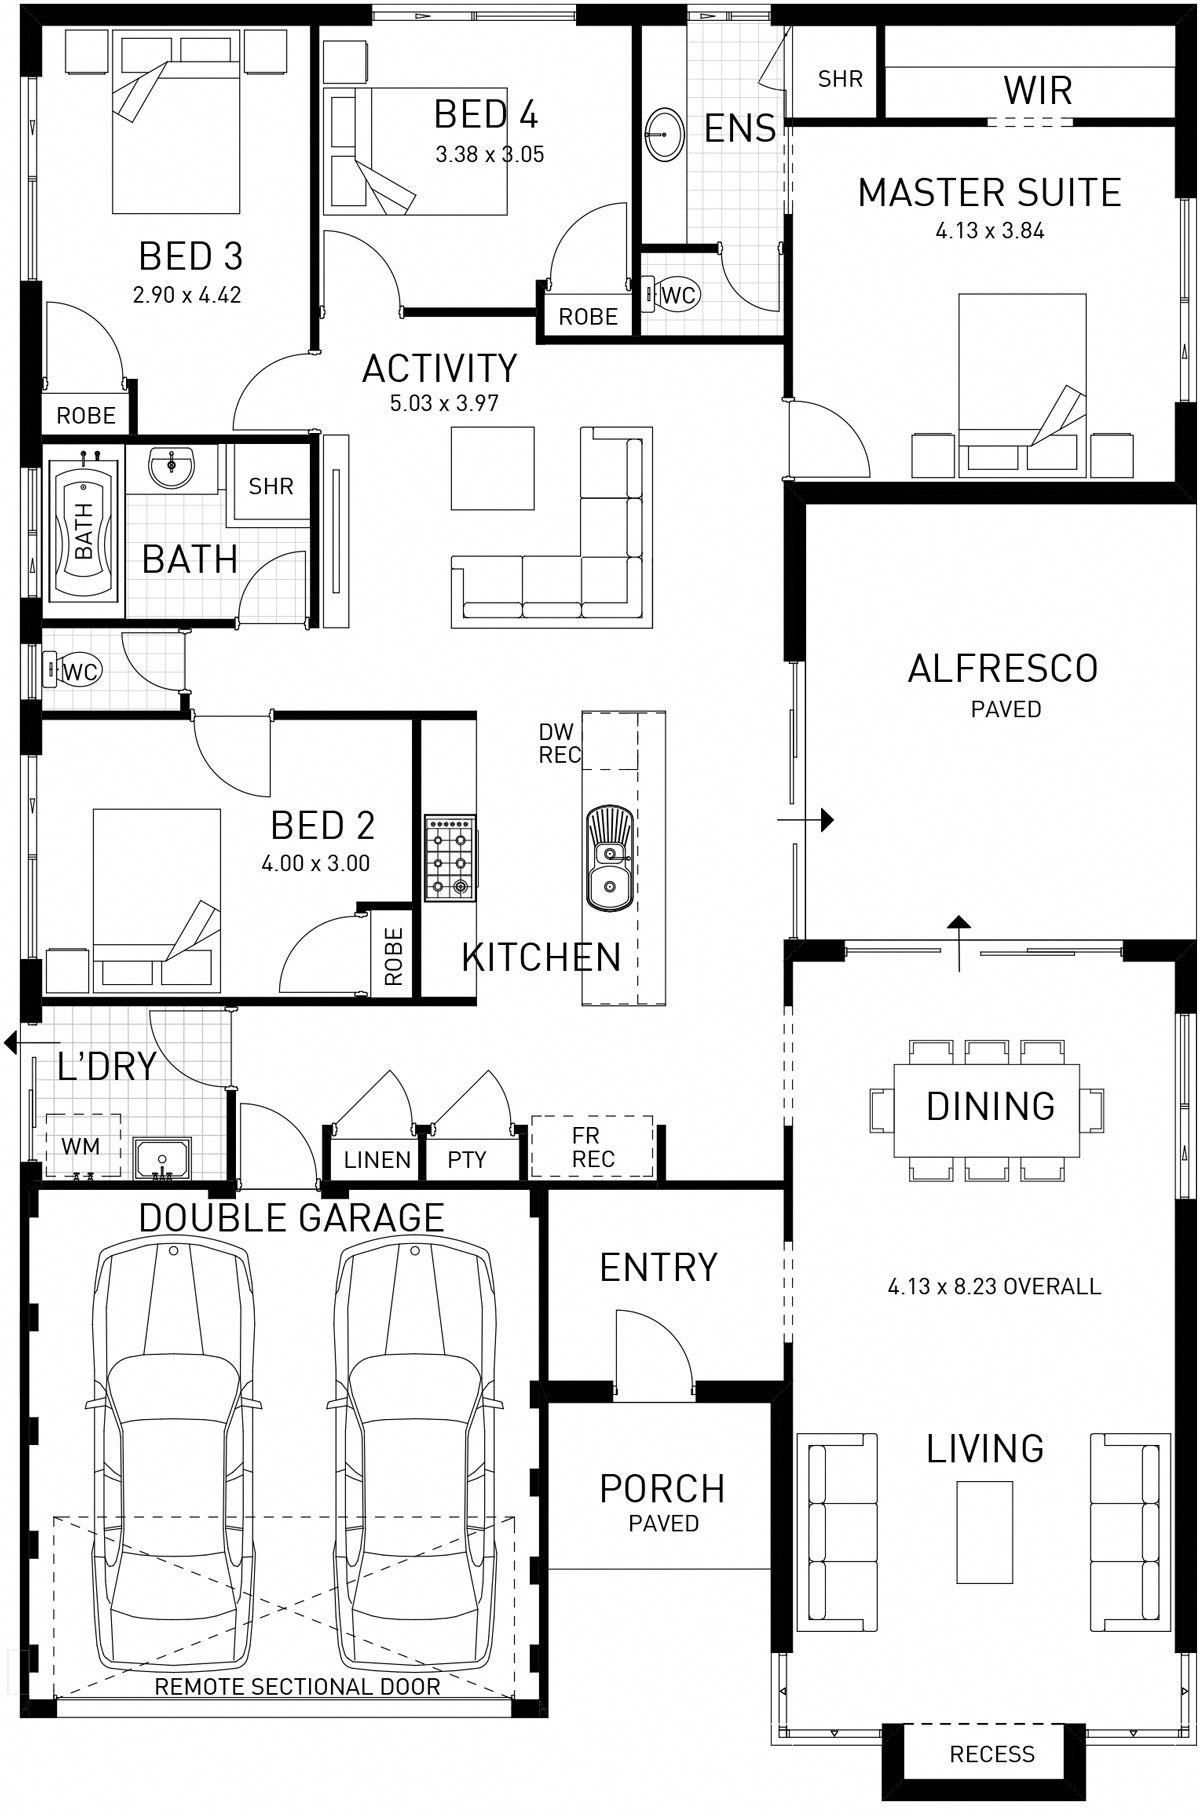 Semillon Single Storey Foundation Floor Plan Western Australia Flooringideasaustralia House Plans Australia 4 Bedroom House Plans Architectural House Plans